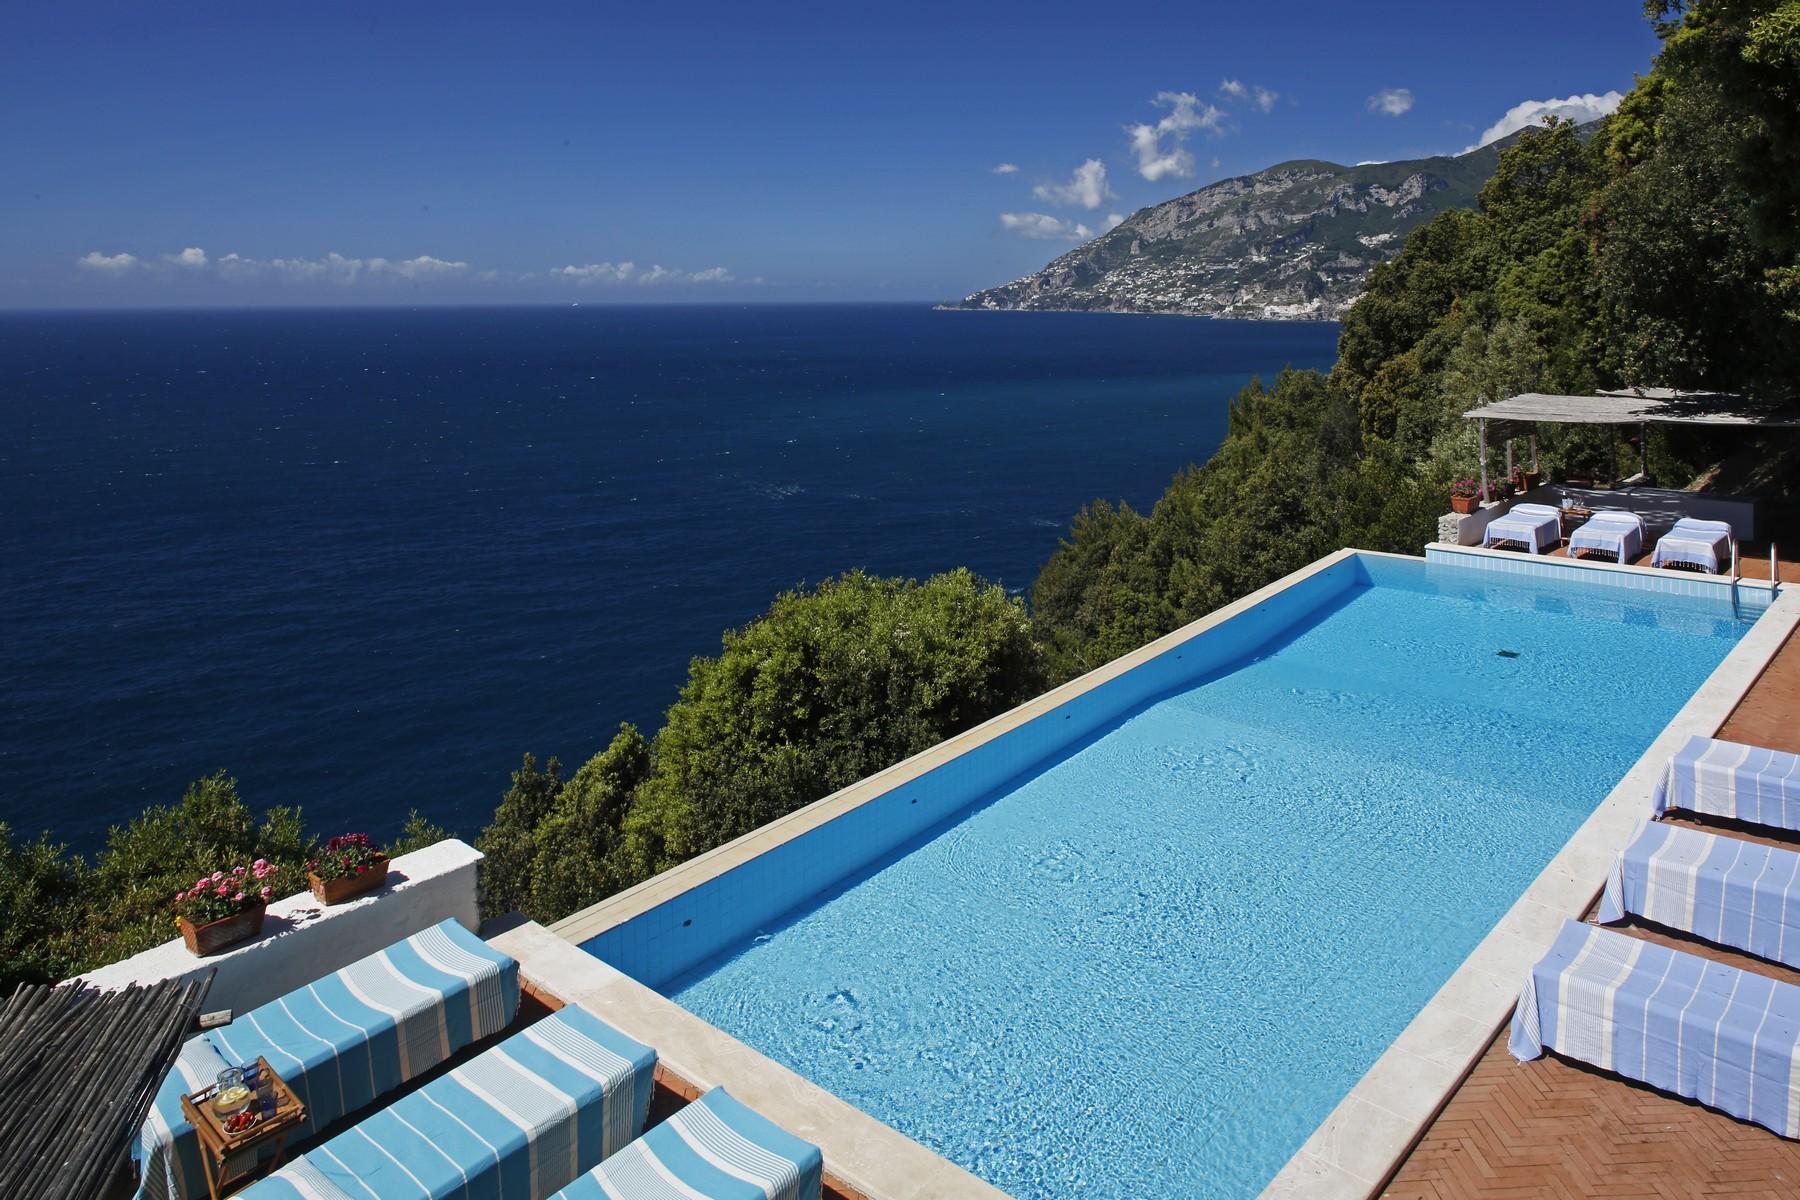 Additional photo for property listing at Villa pied dans l'eau in Amalfi coast  Maiori, Salerno 84100 Italy